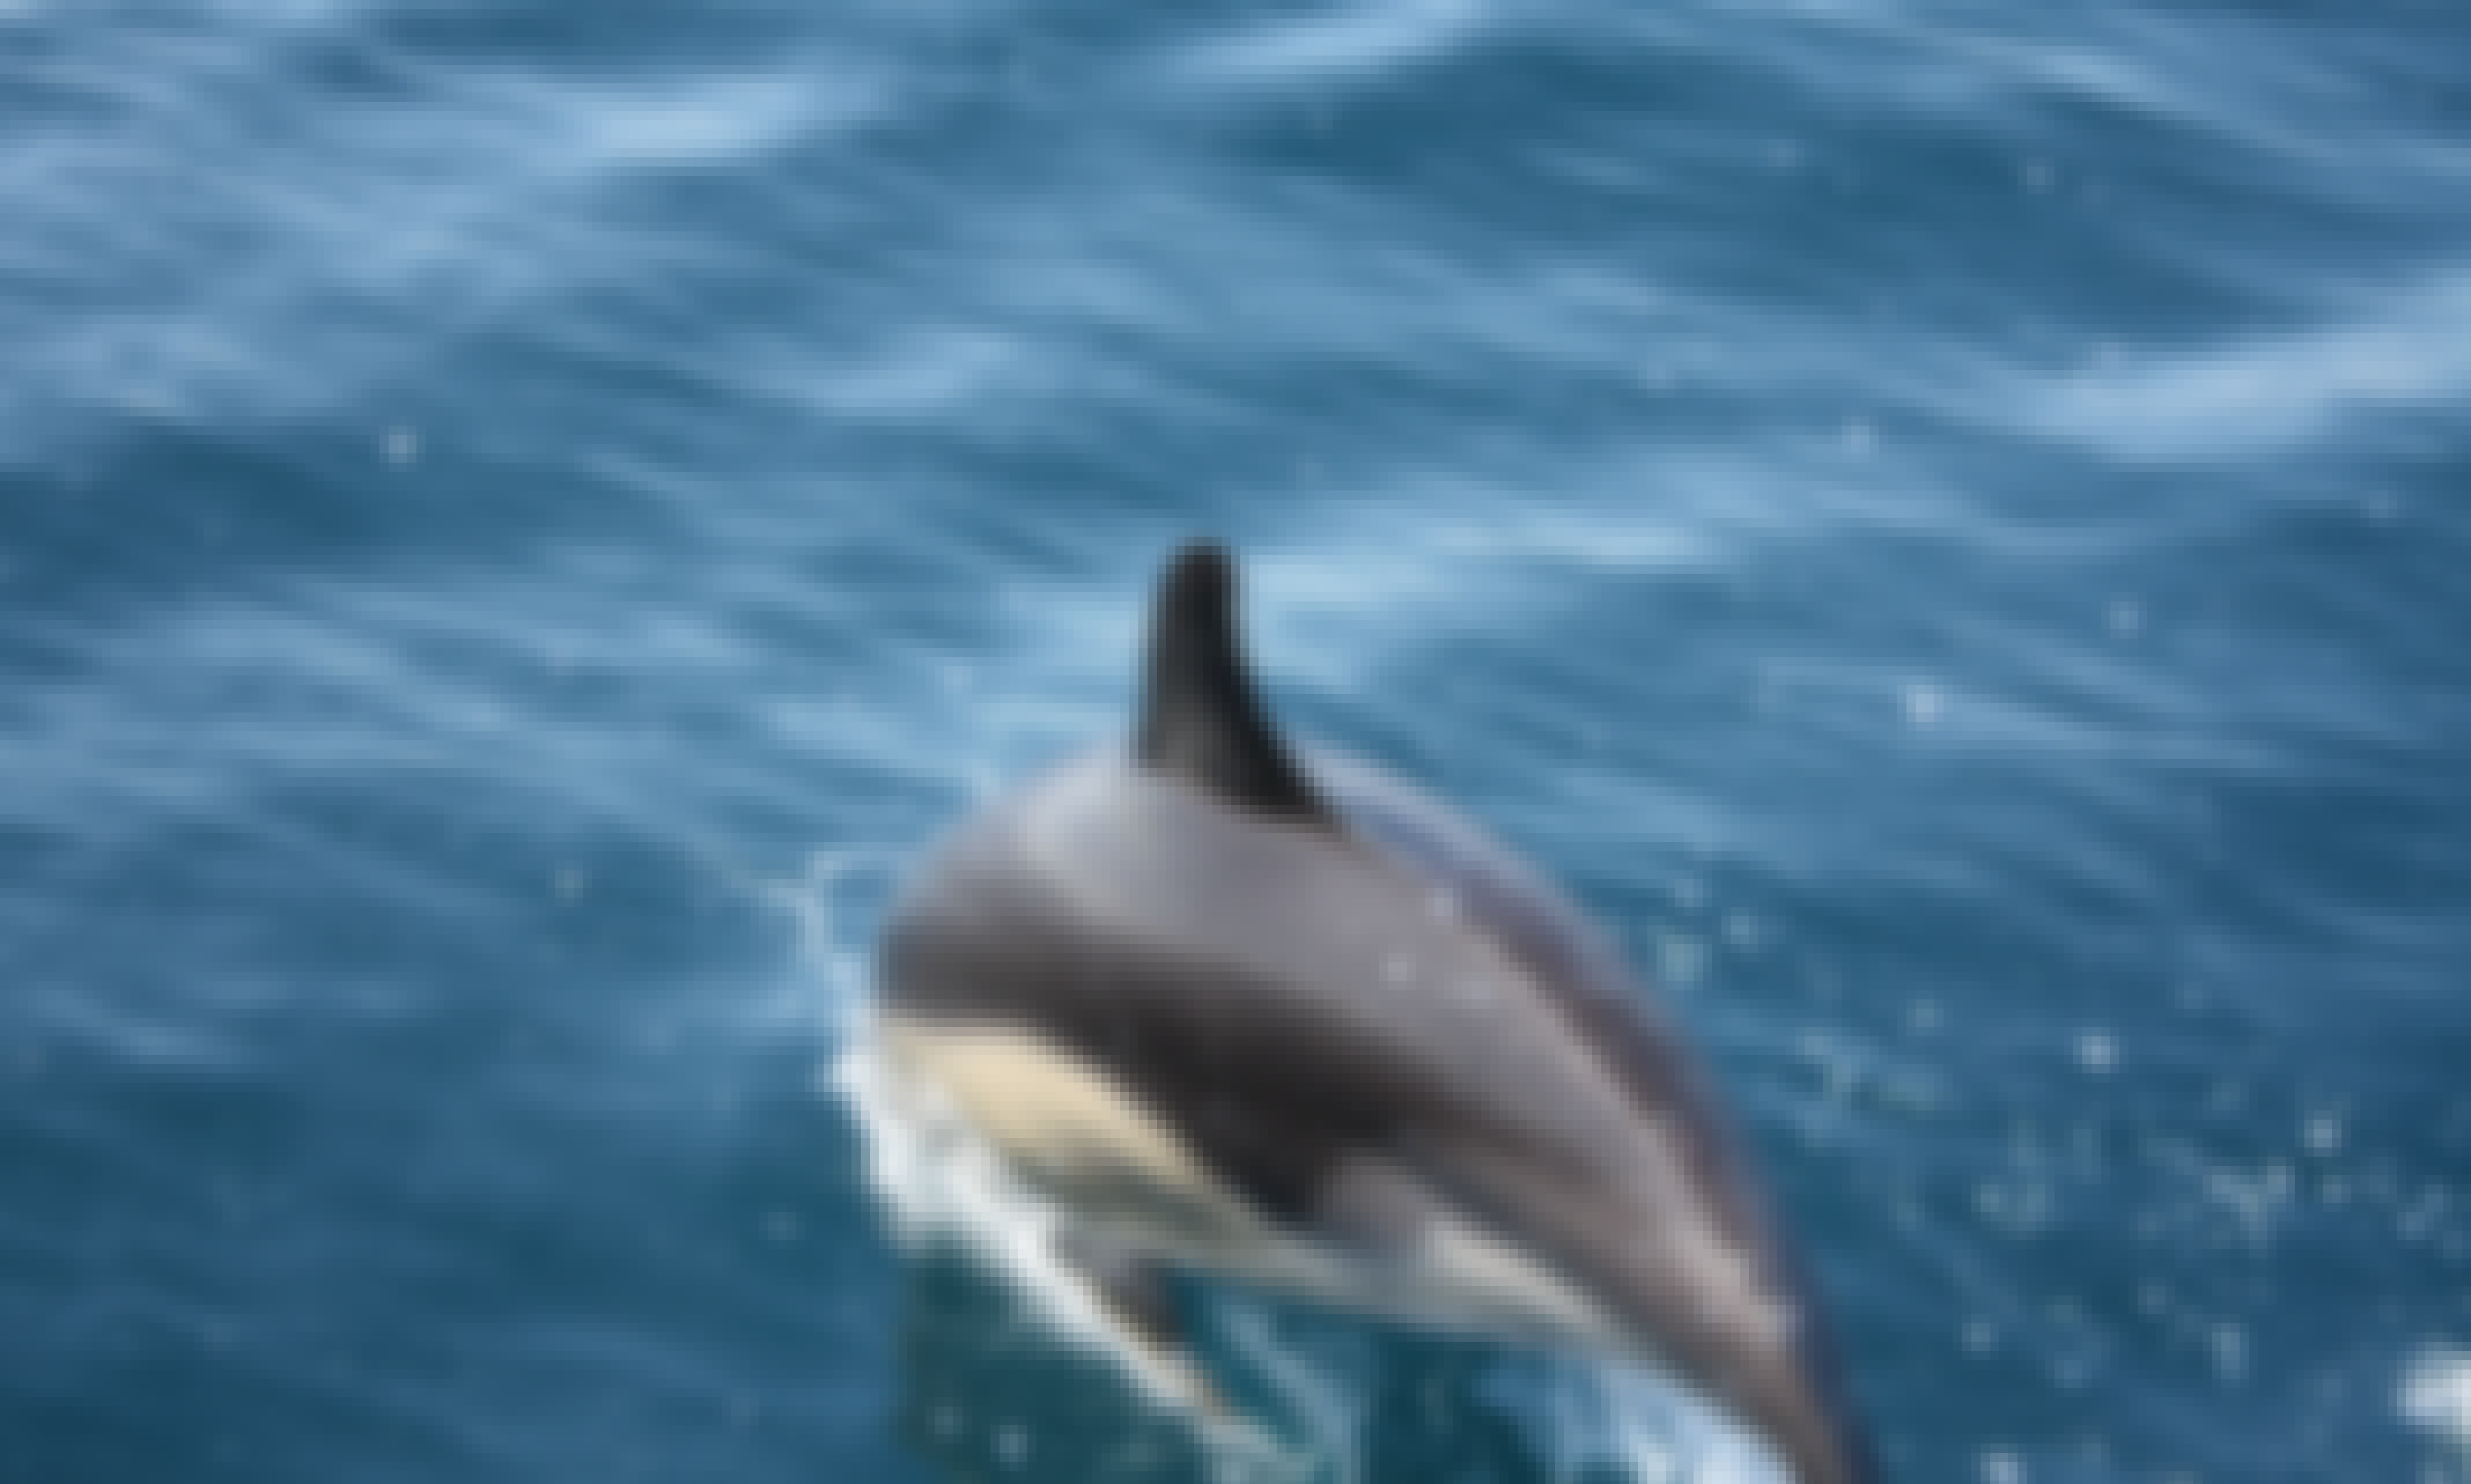 Boat Tour for 5 Person on Atlantic Ocean - The Highlight of your Holidays!